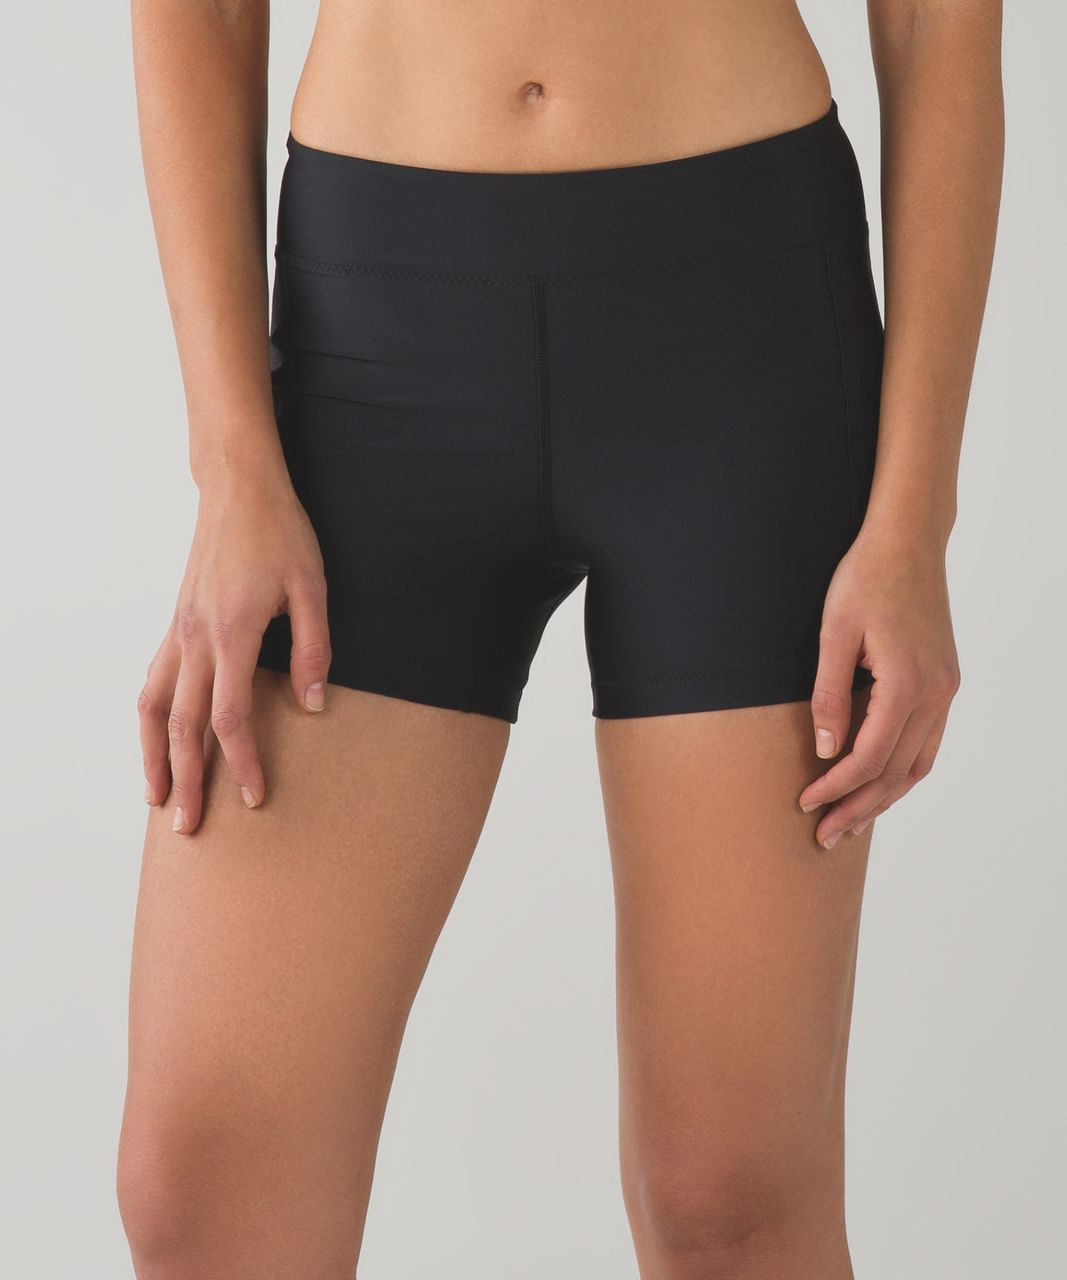 Lululemon Water:  Sun And Swim Short - Black